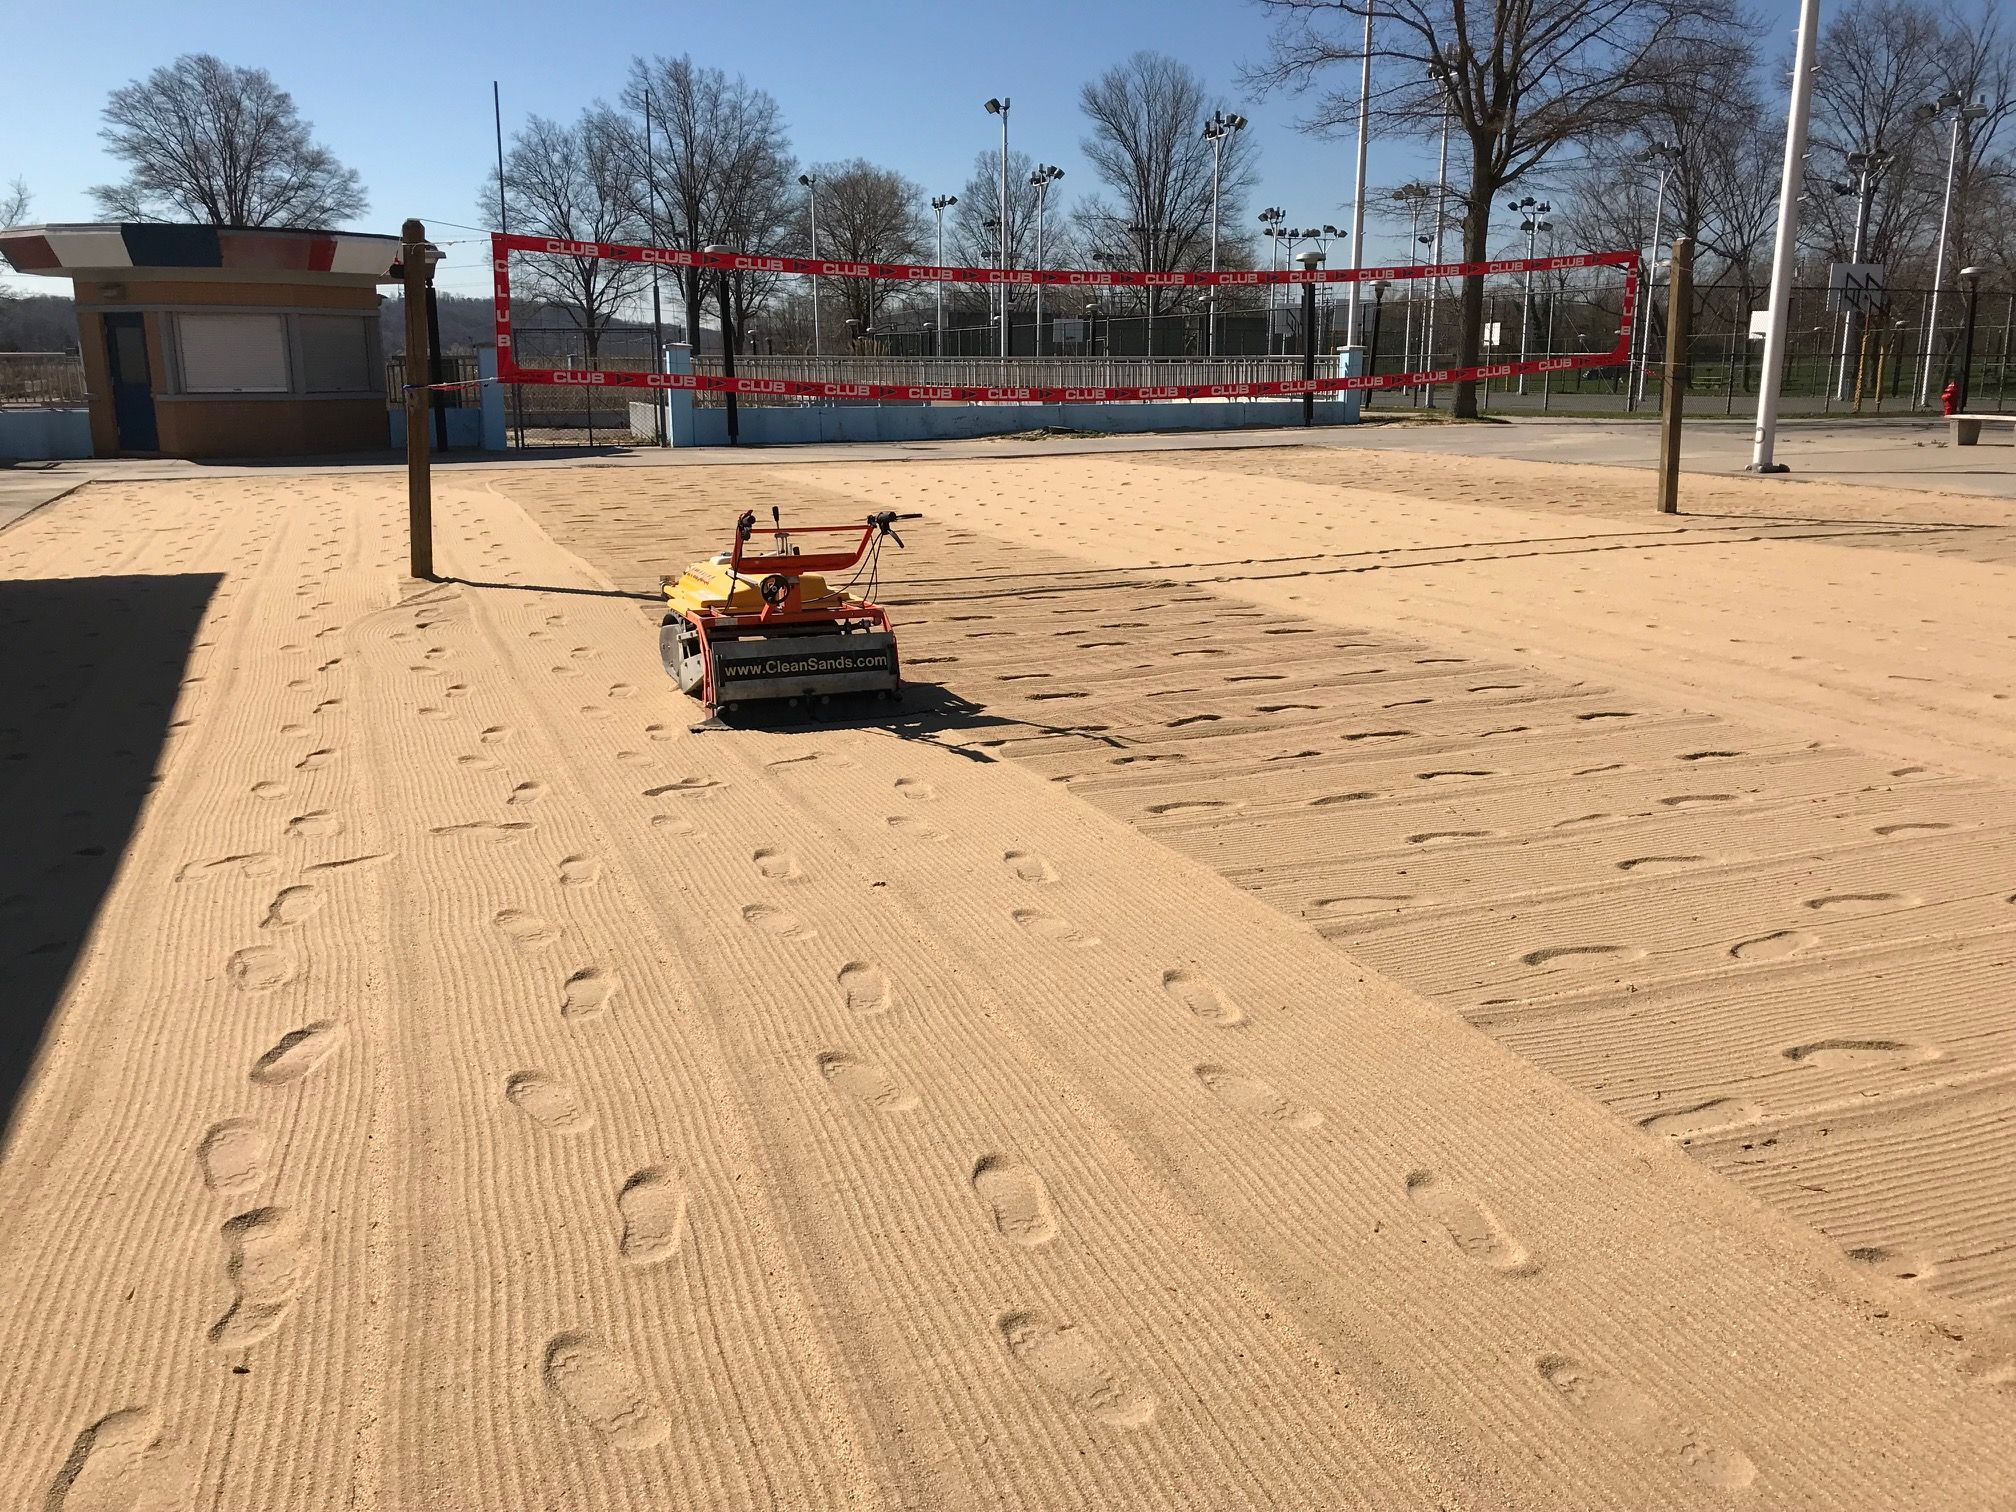 Beach Volleyball Sand Cleaner For Courts Easy Cleaning And Grooming At The Same Time With The Barracuda Well Designed For V Clean Beach Wellness Design Beach